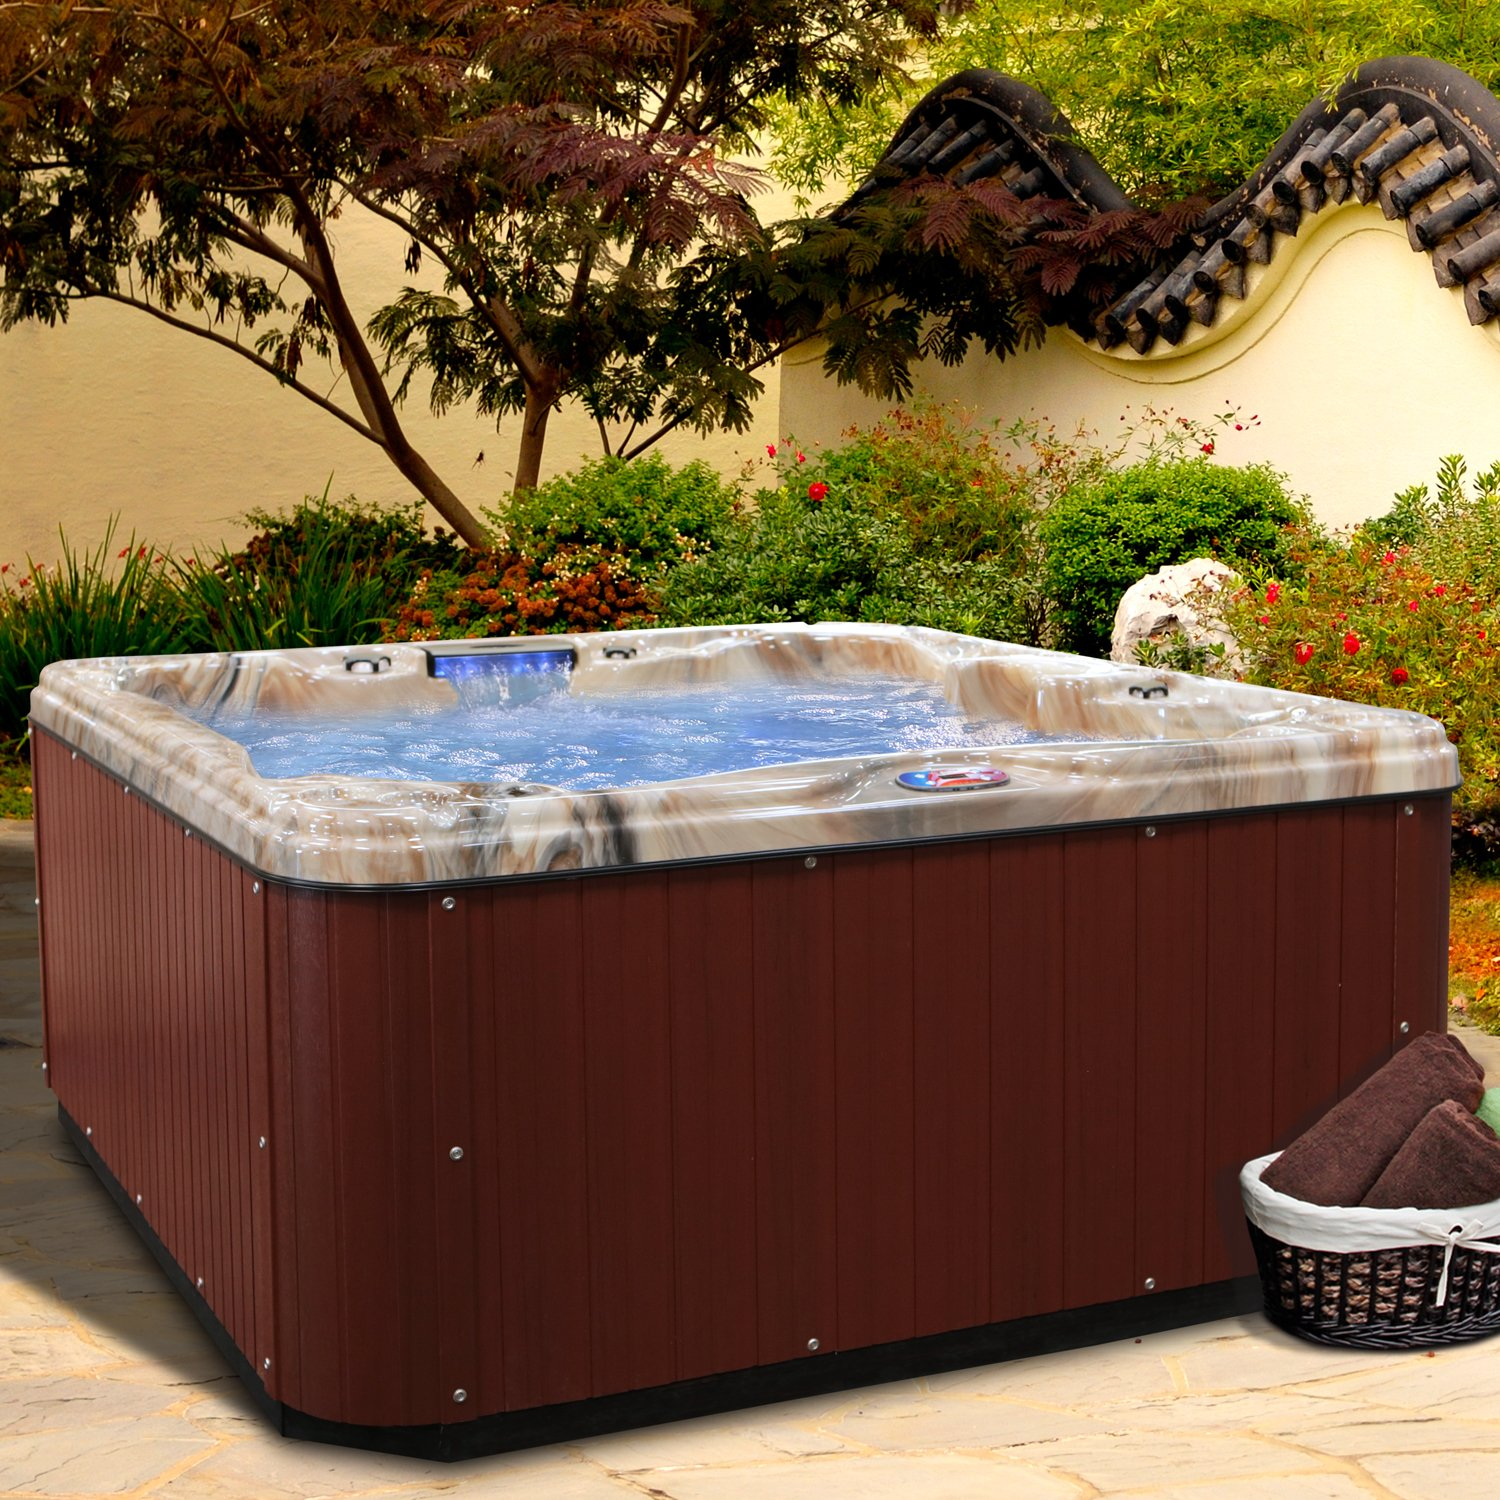 American Spas AM-630LM 5-Person 30-Jet